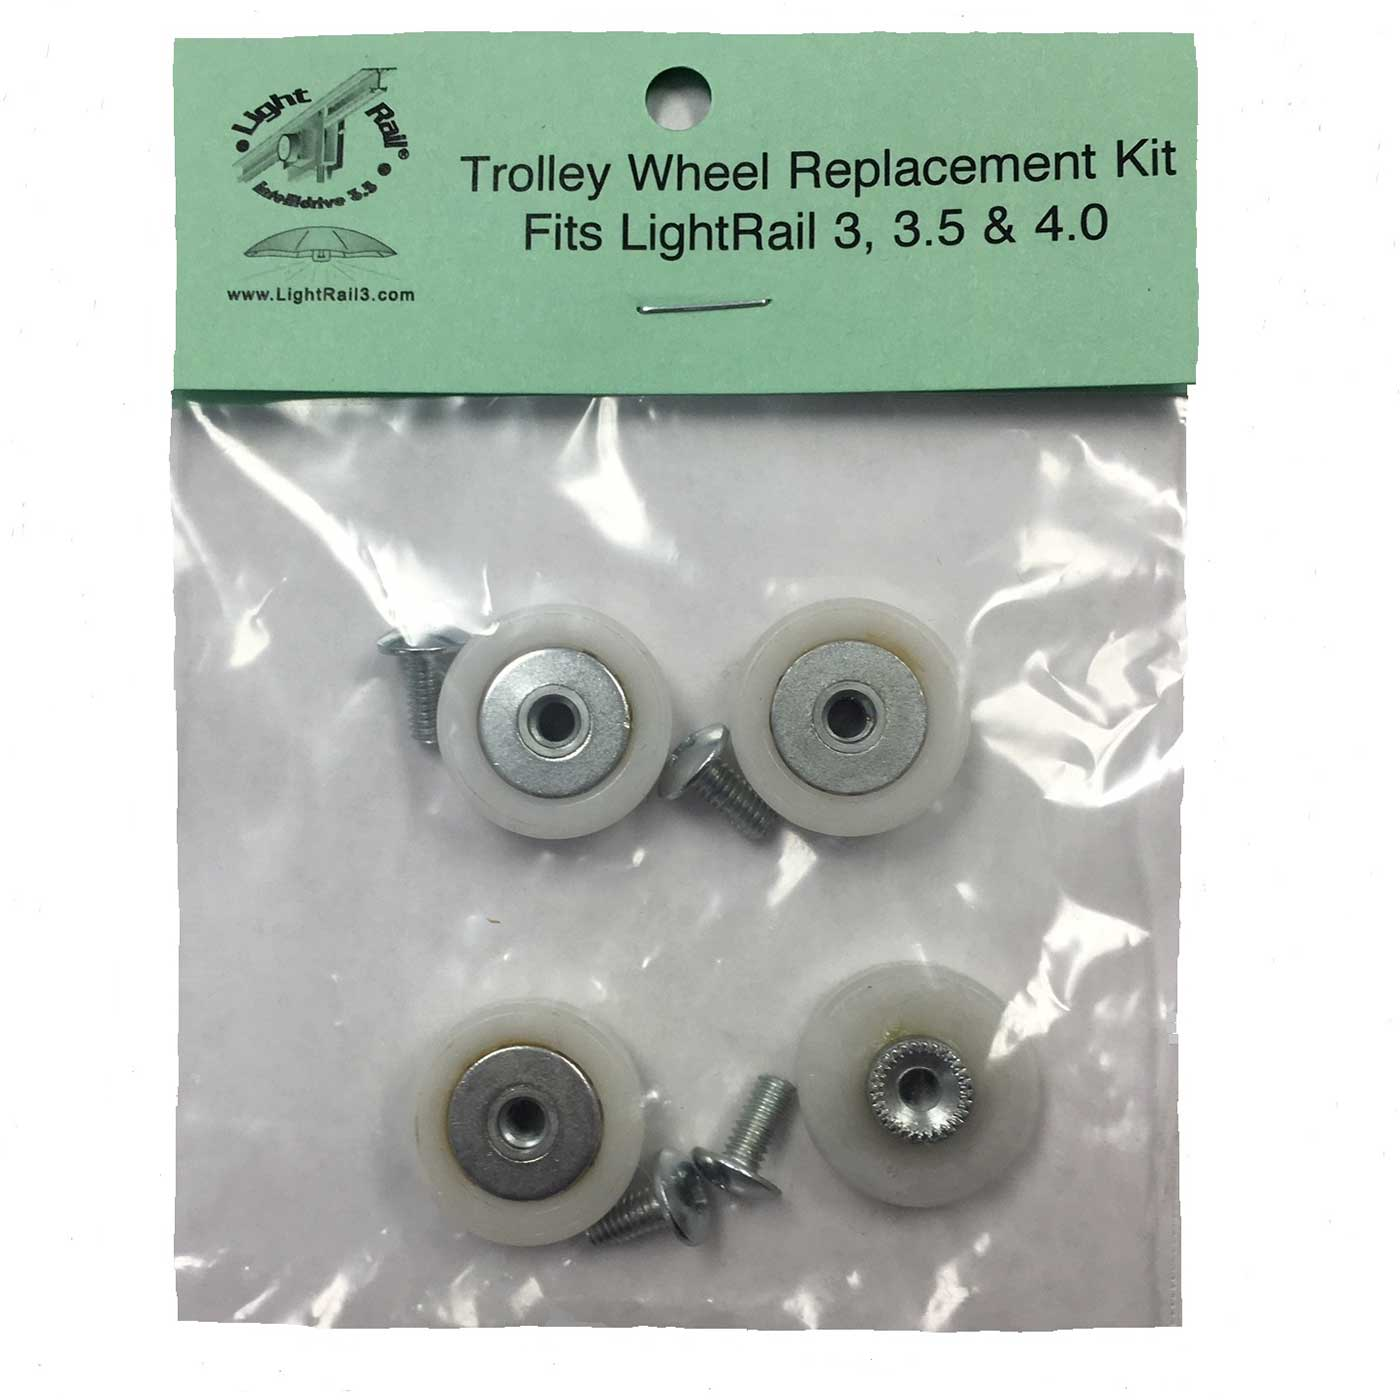 LightRail Trolley Wheels Replacement Kit is compatible to LightRail 3.5 and LightRail 4.0 as well as the older LR3.0 grow light systems.